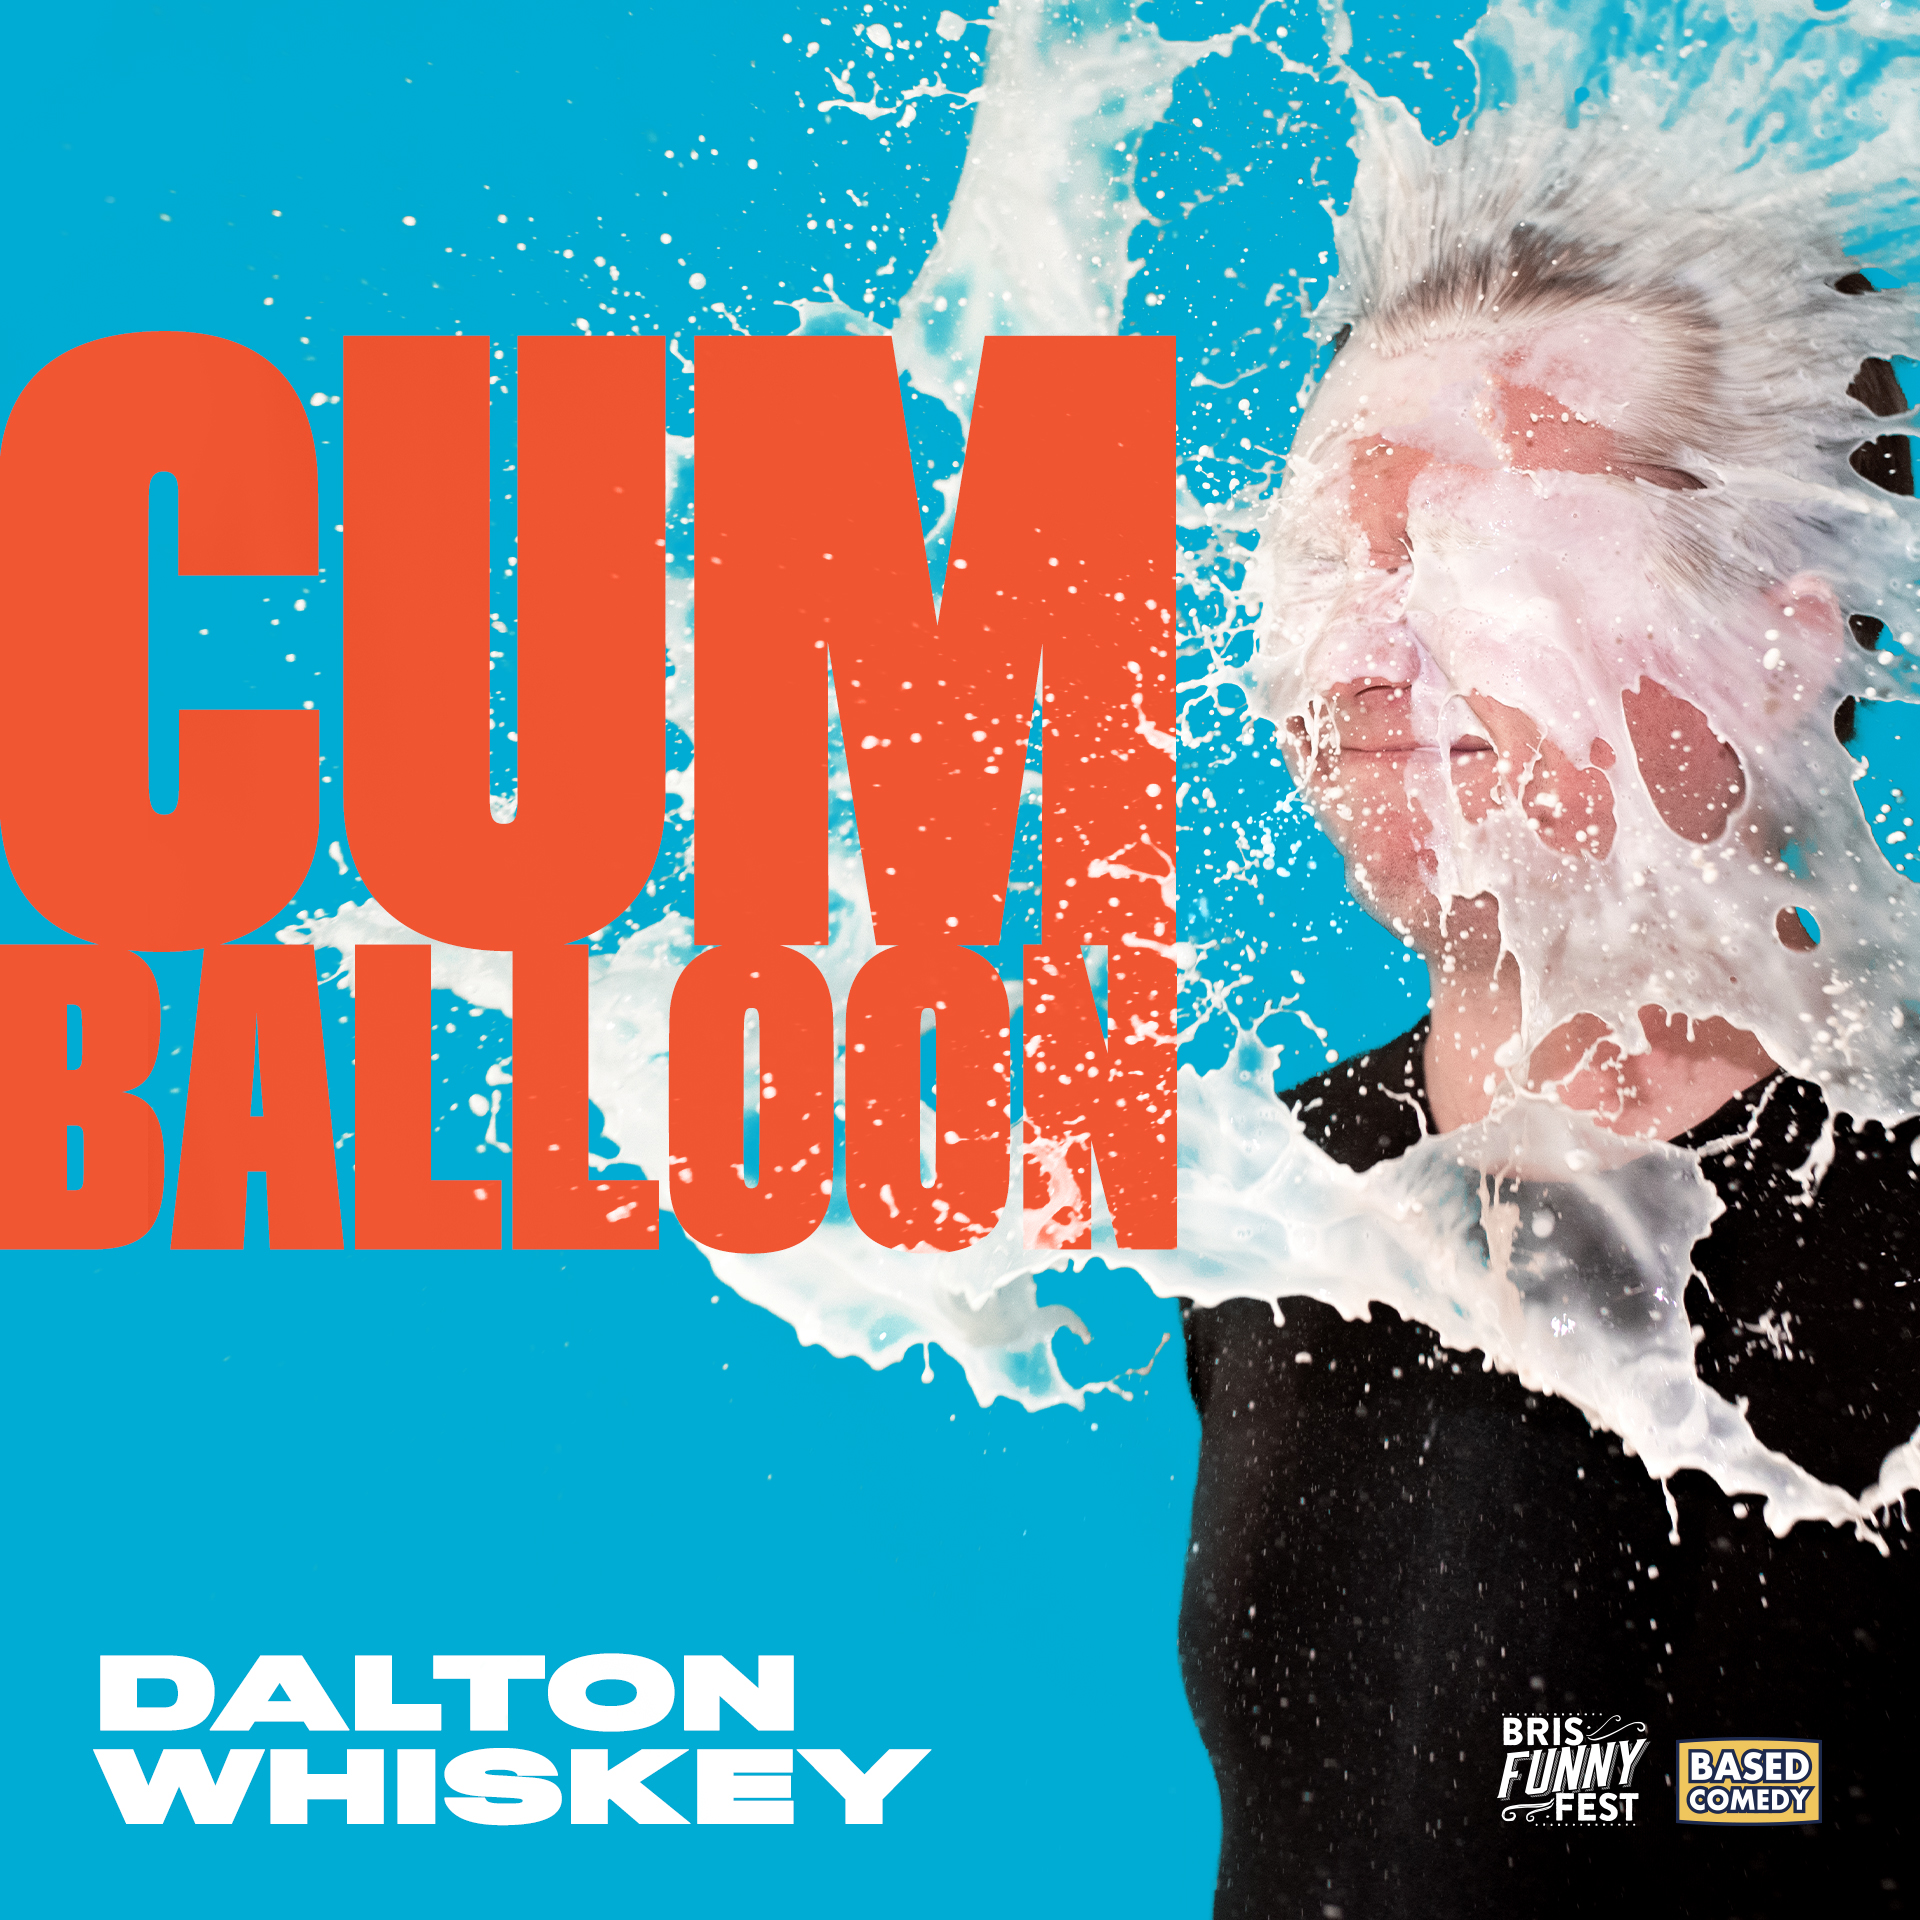 Cum Balloon, performed by Dalton Whiskey